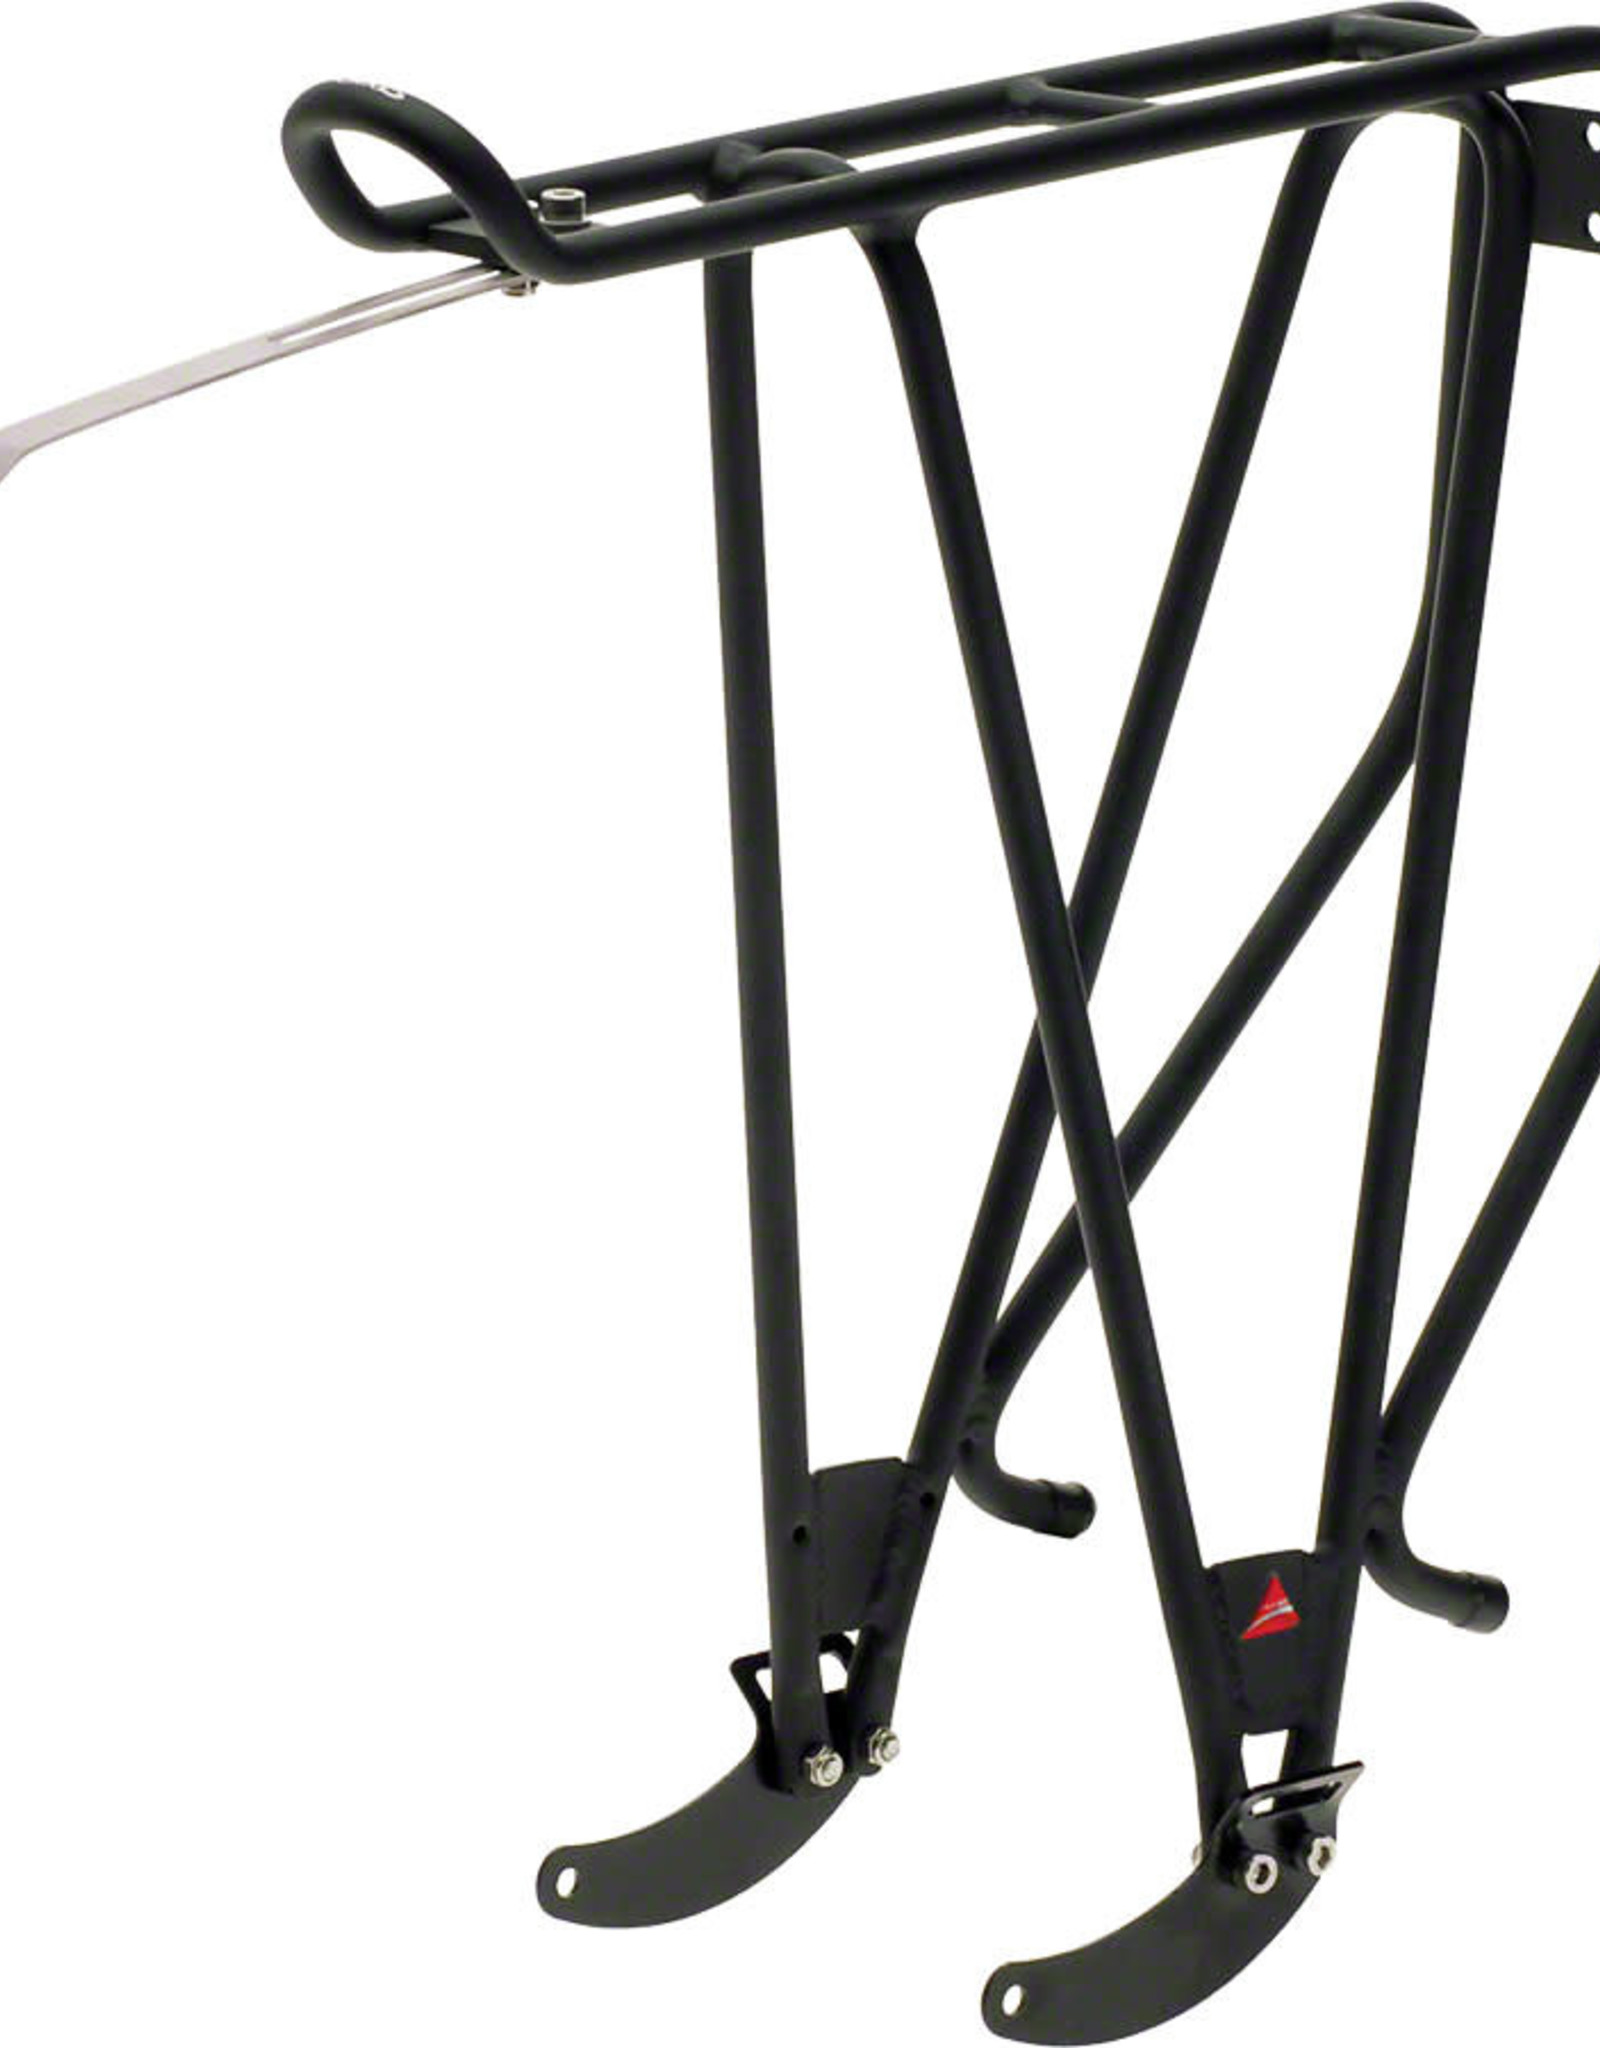 Axiom Streamliner Road DLX Rear Rack: Black